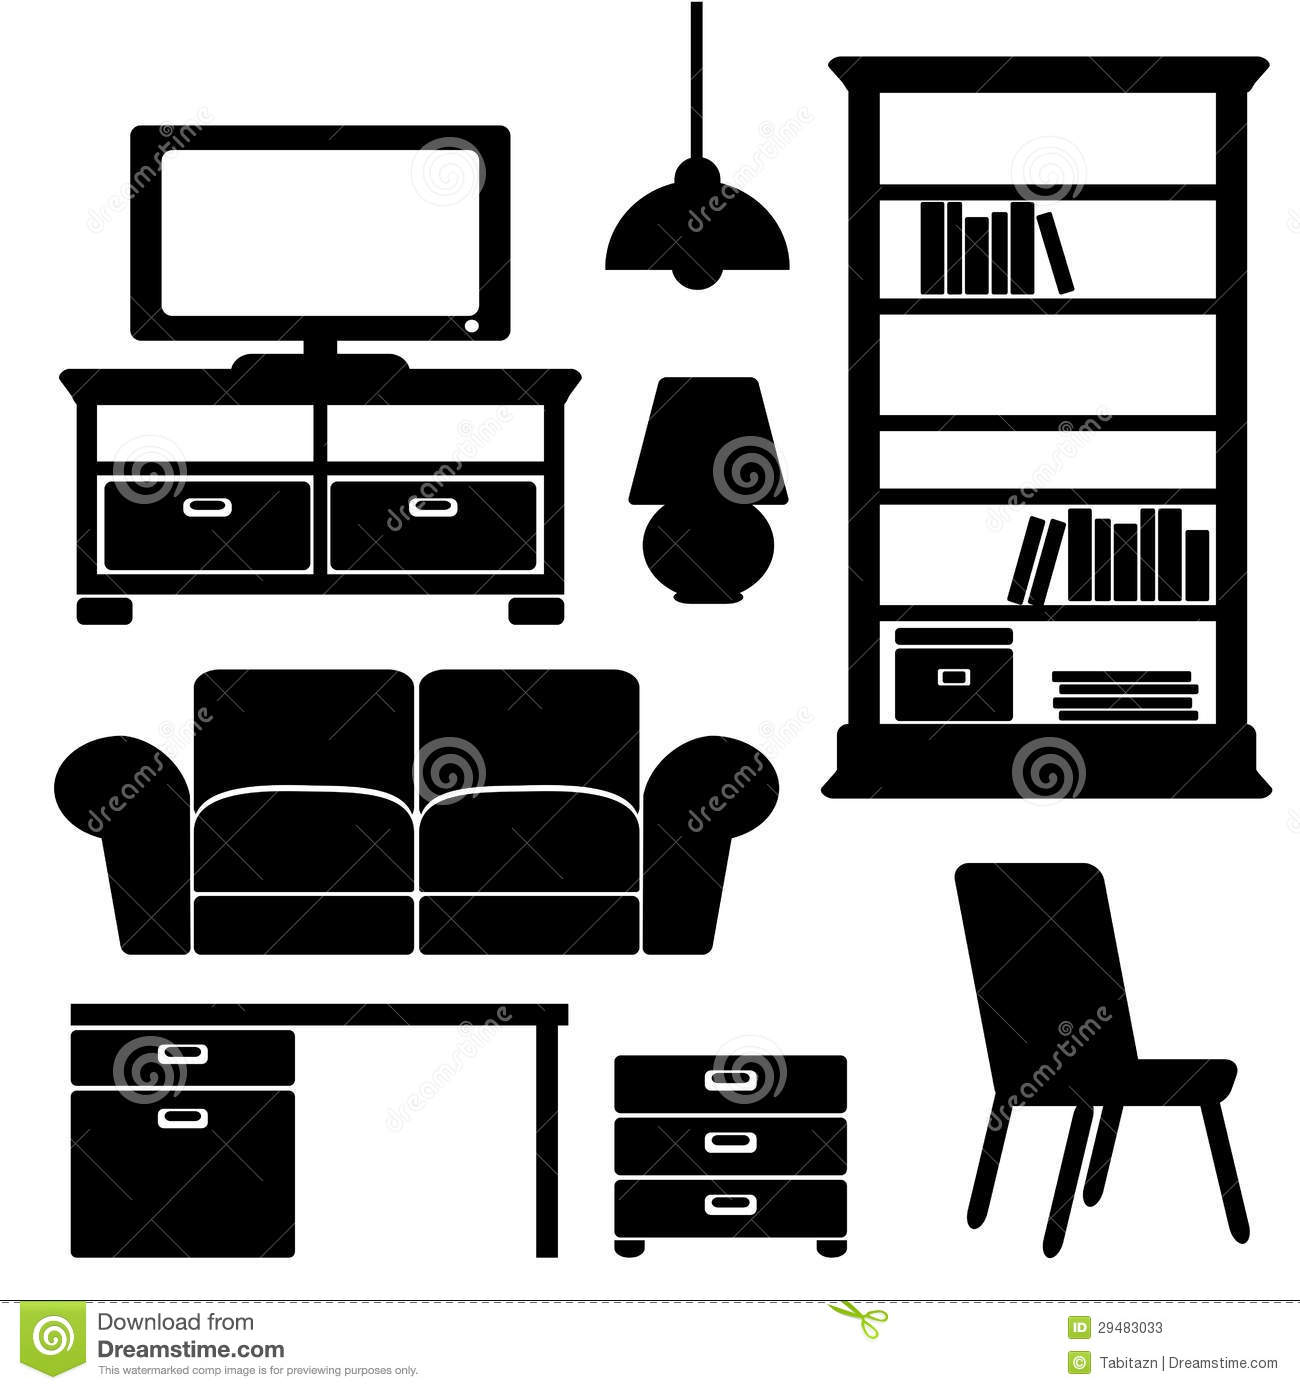 Furniture interior icons stock vector. Illustration of ...